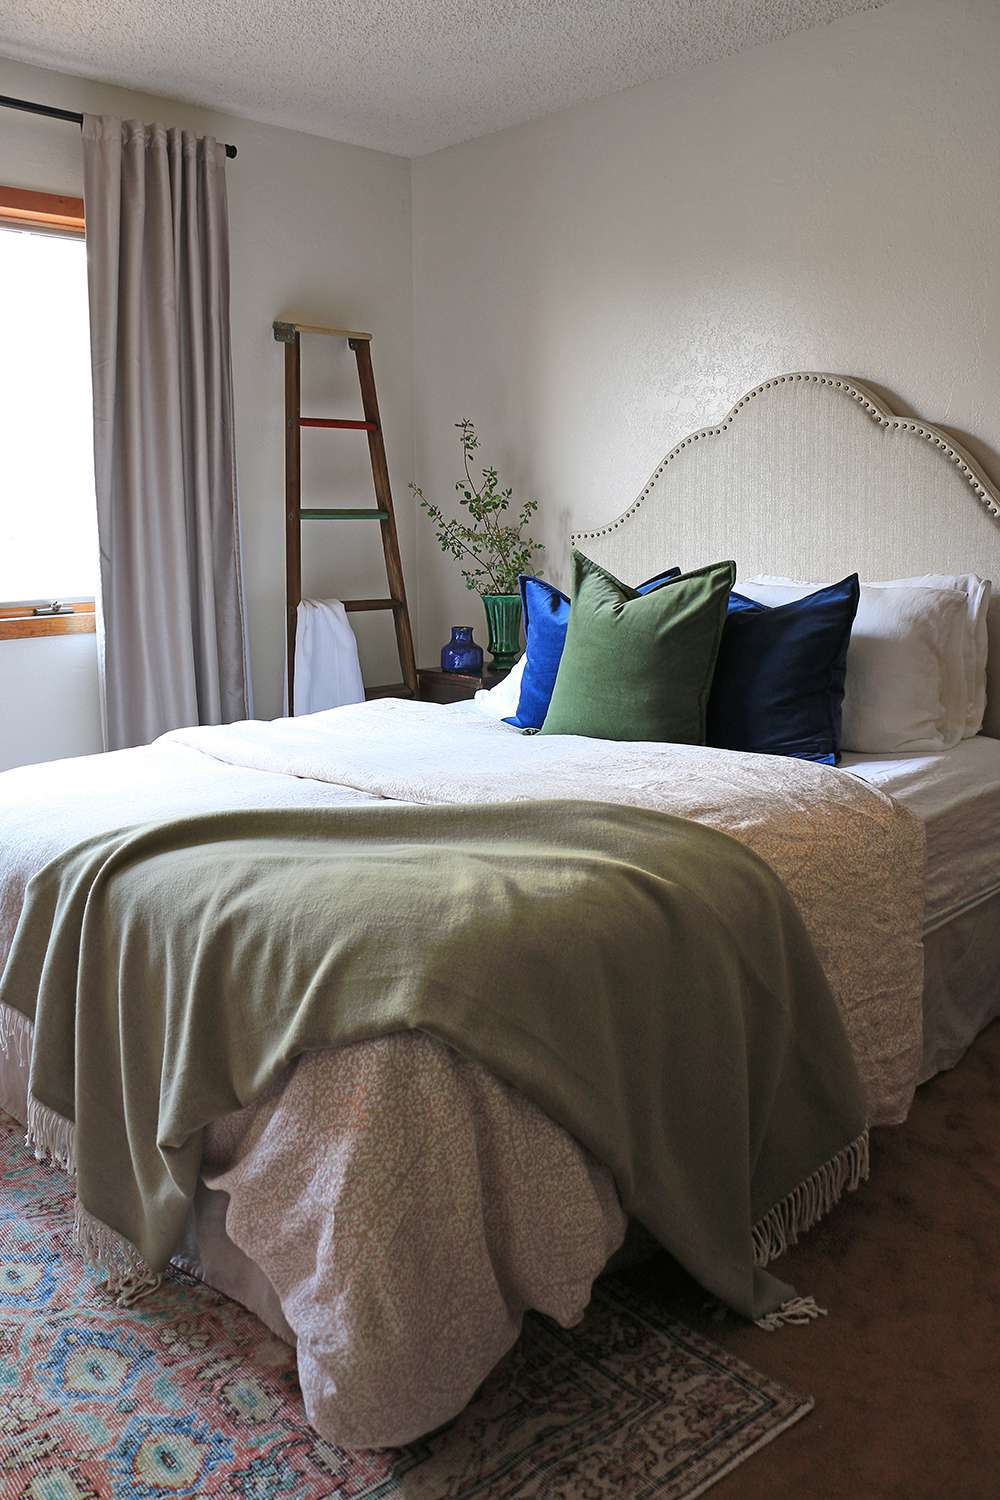 Green and blue accents in a bedroom